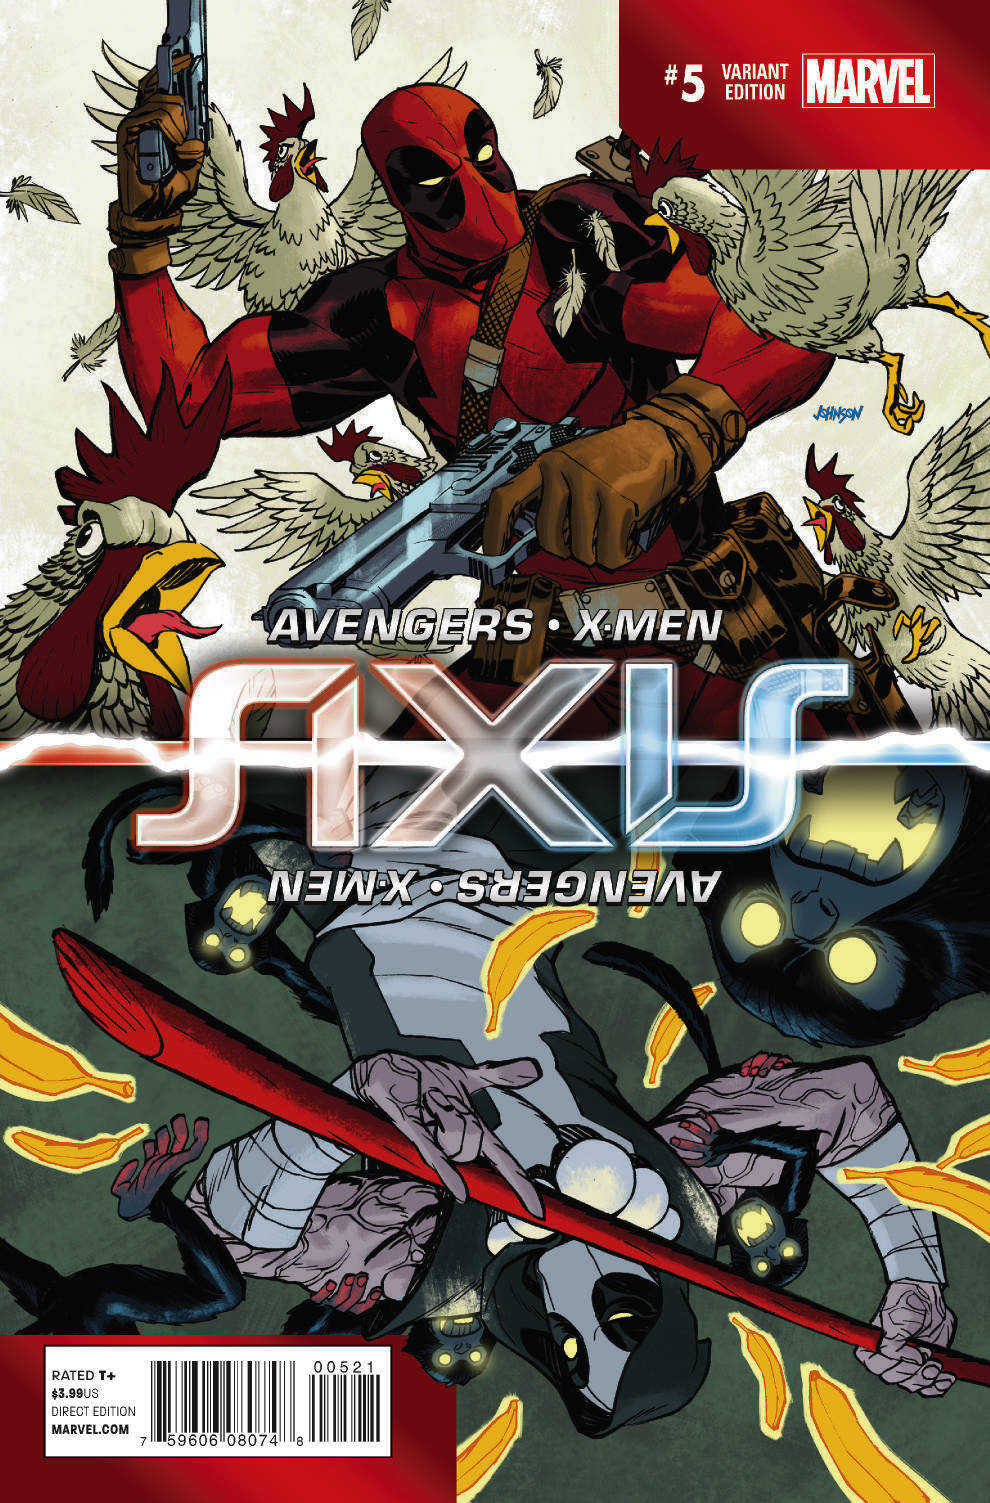 Avengers_&_X-Men_AXIS_5_Johnson_Inversion_Variant